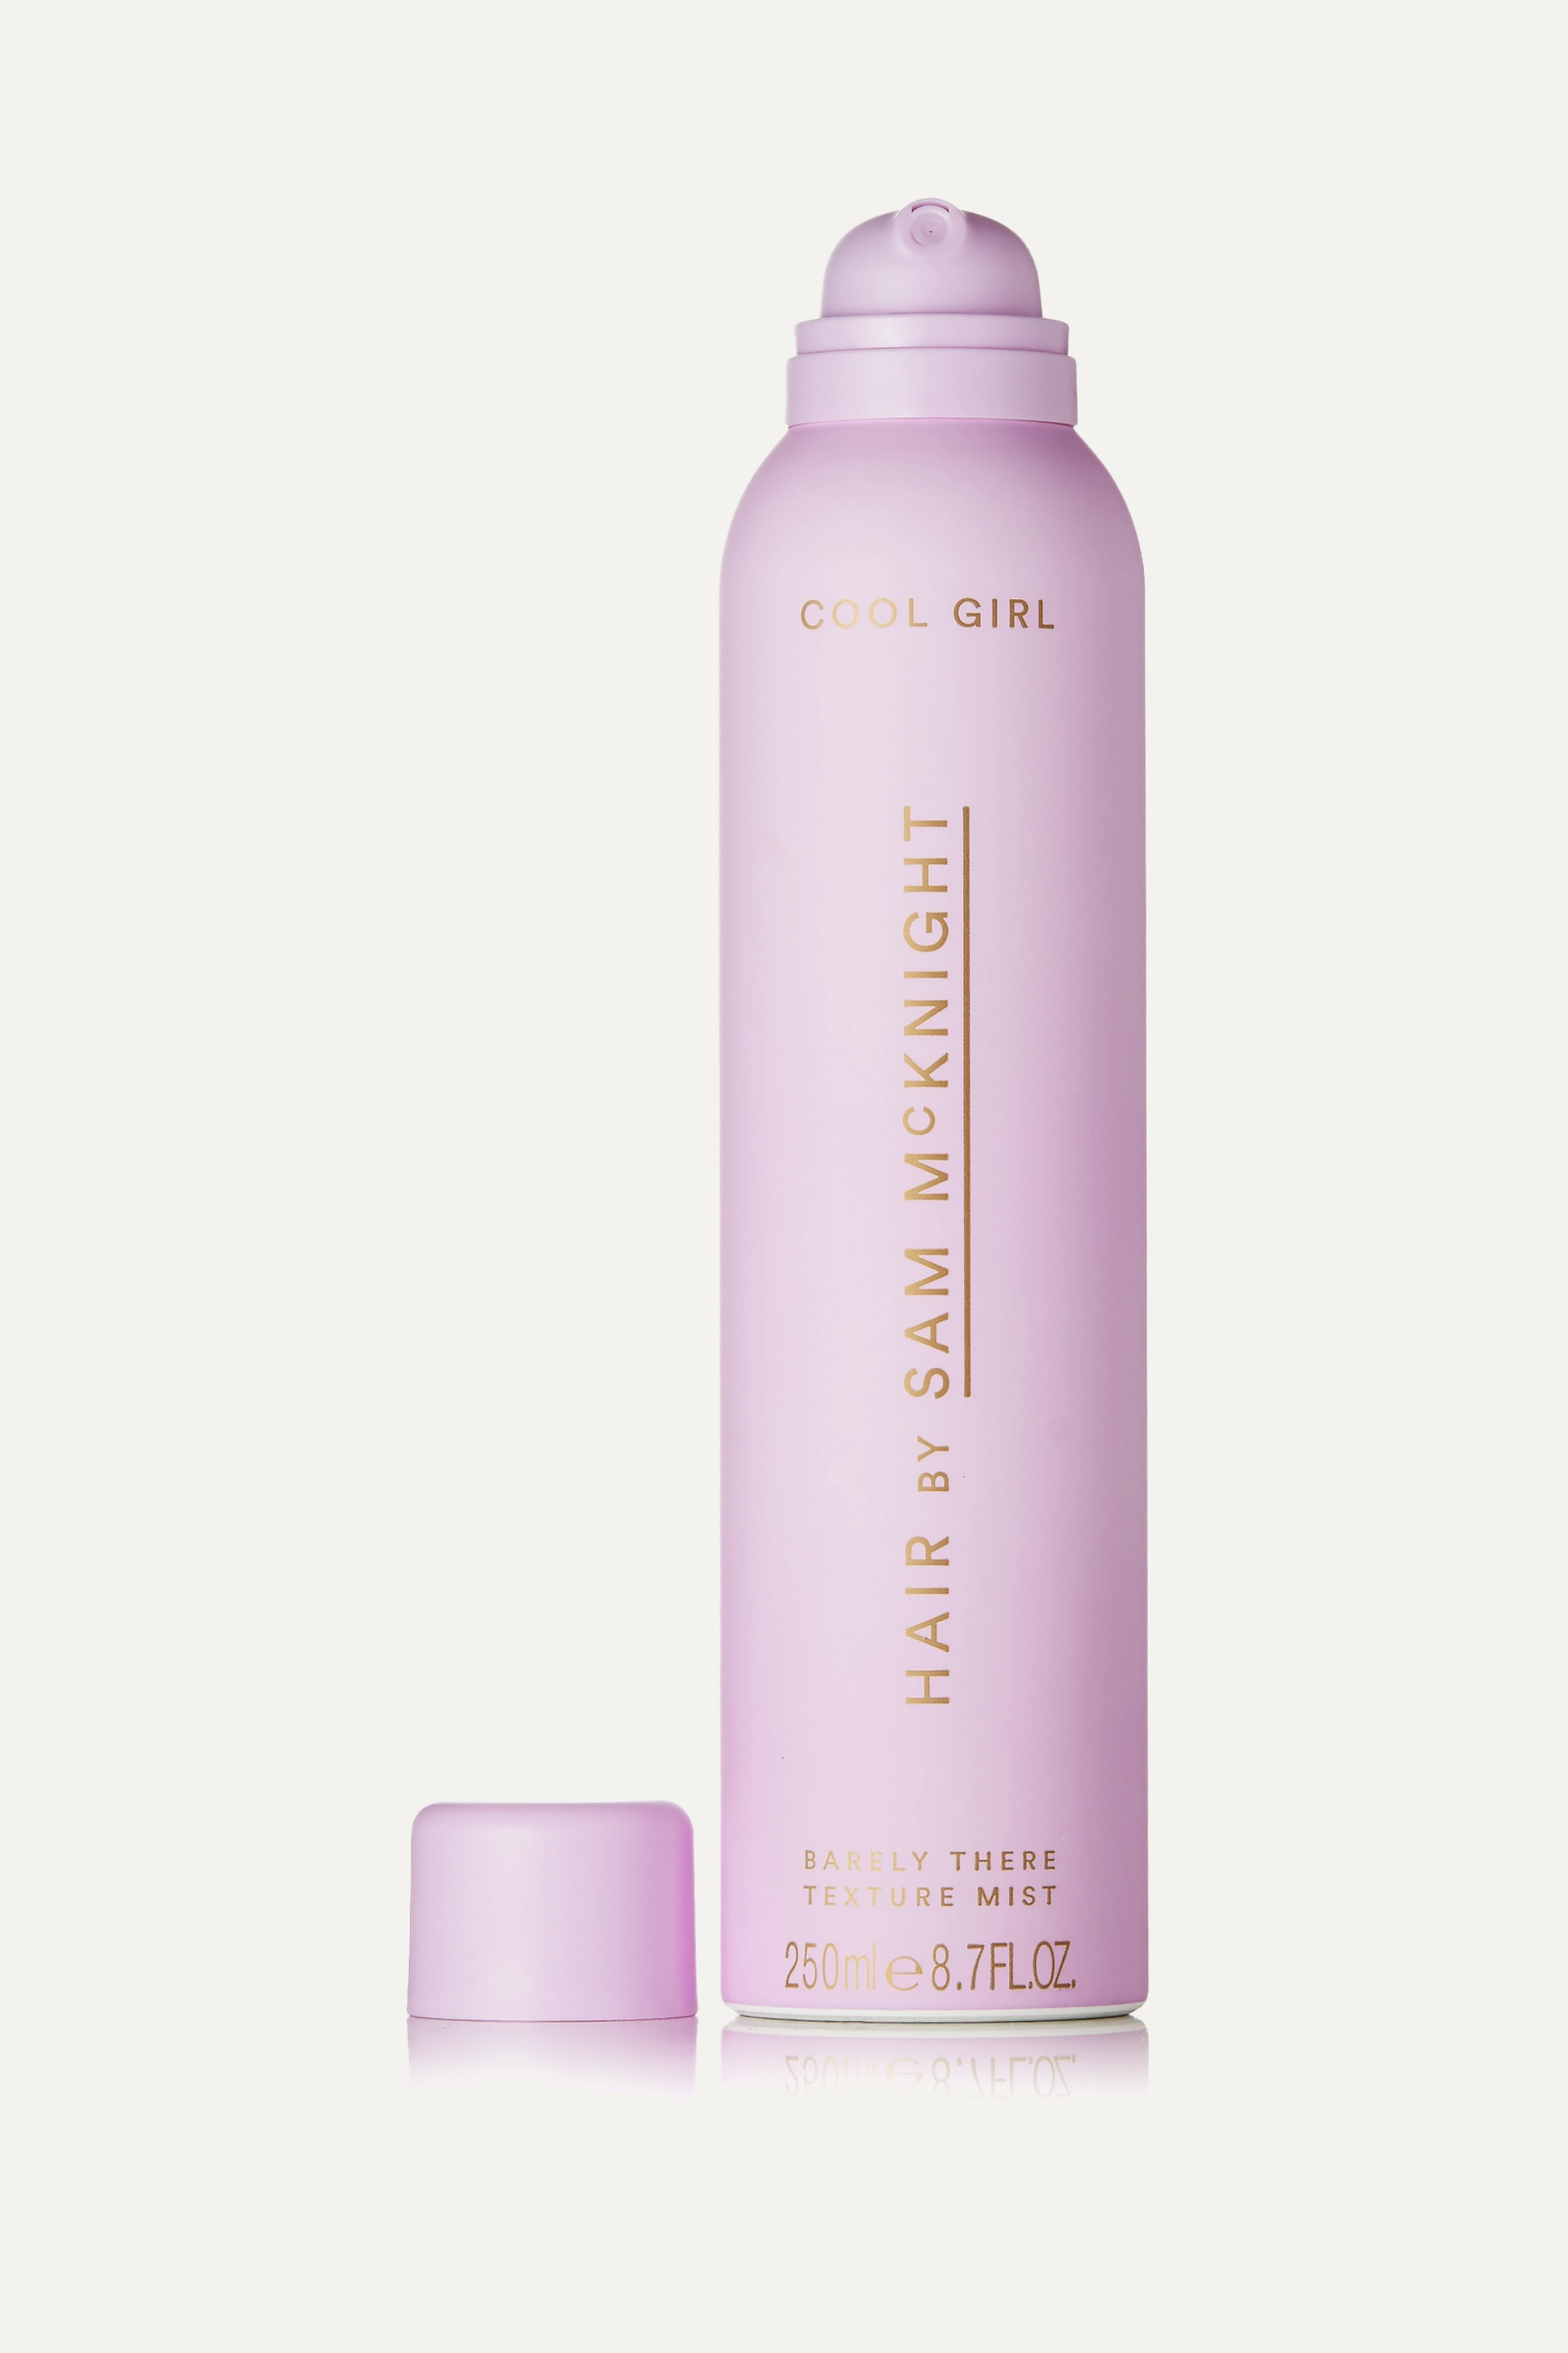 HAIR BY SAM McKNIGHT Cool Girl Barely There Texture Mist, 250ml